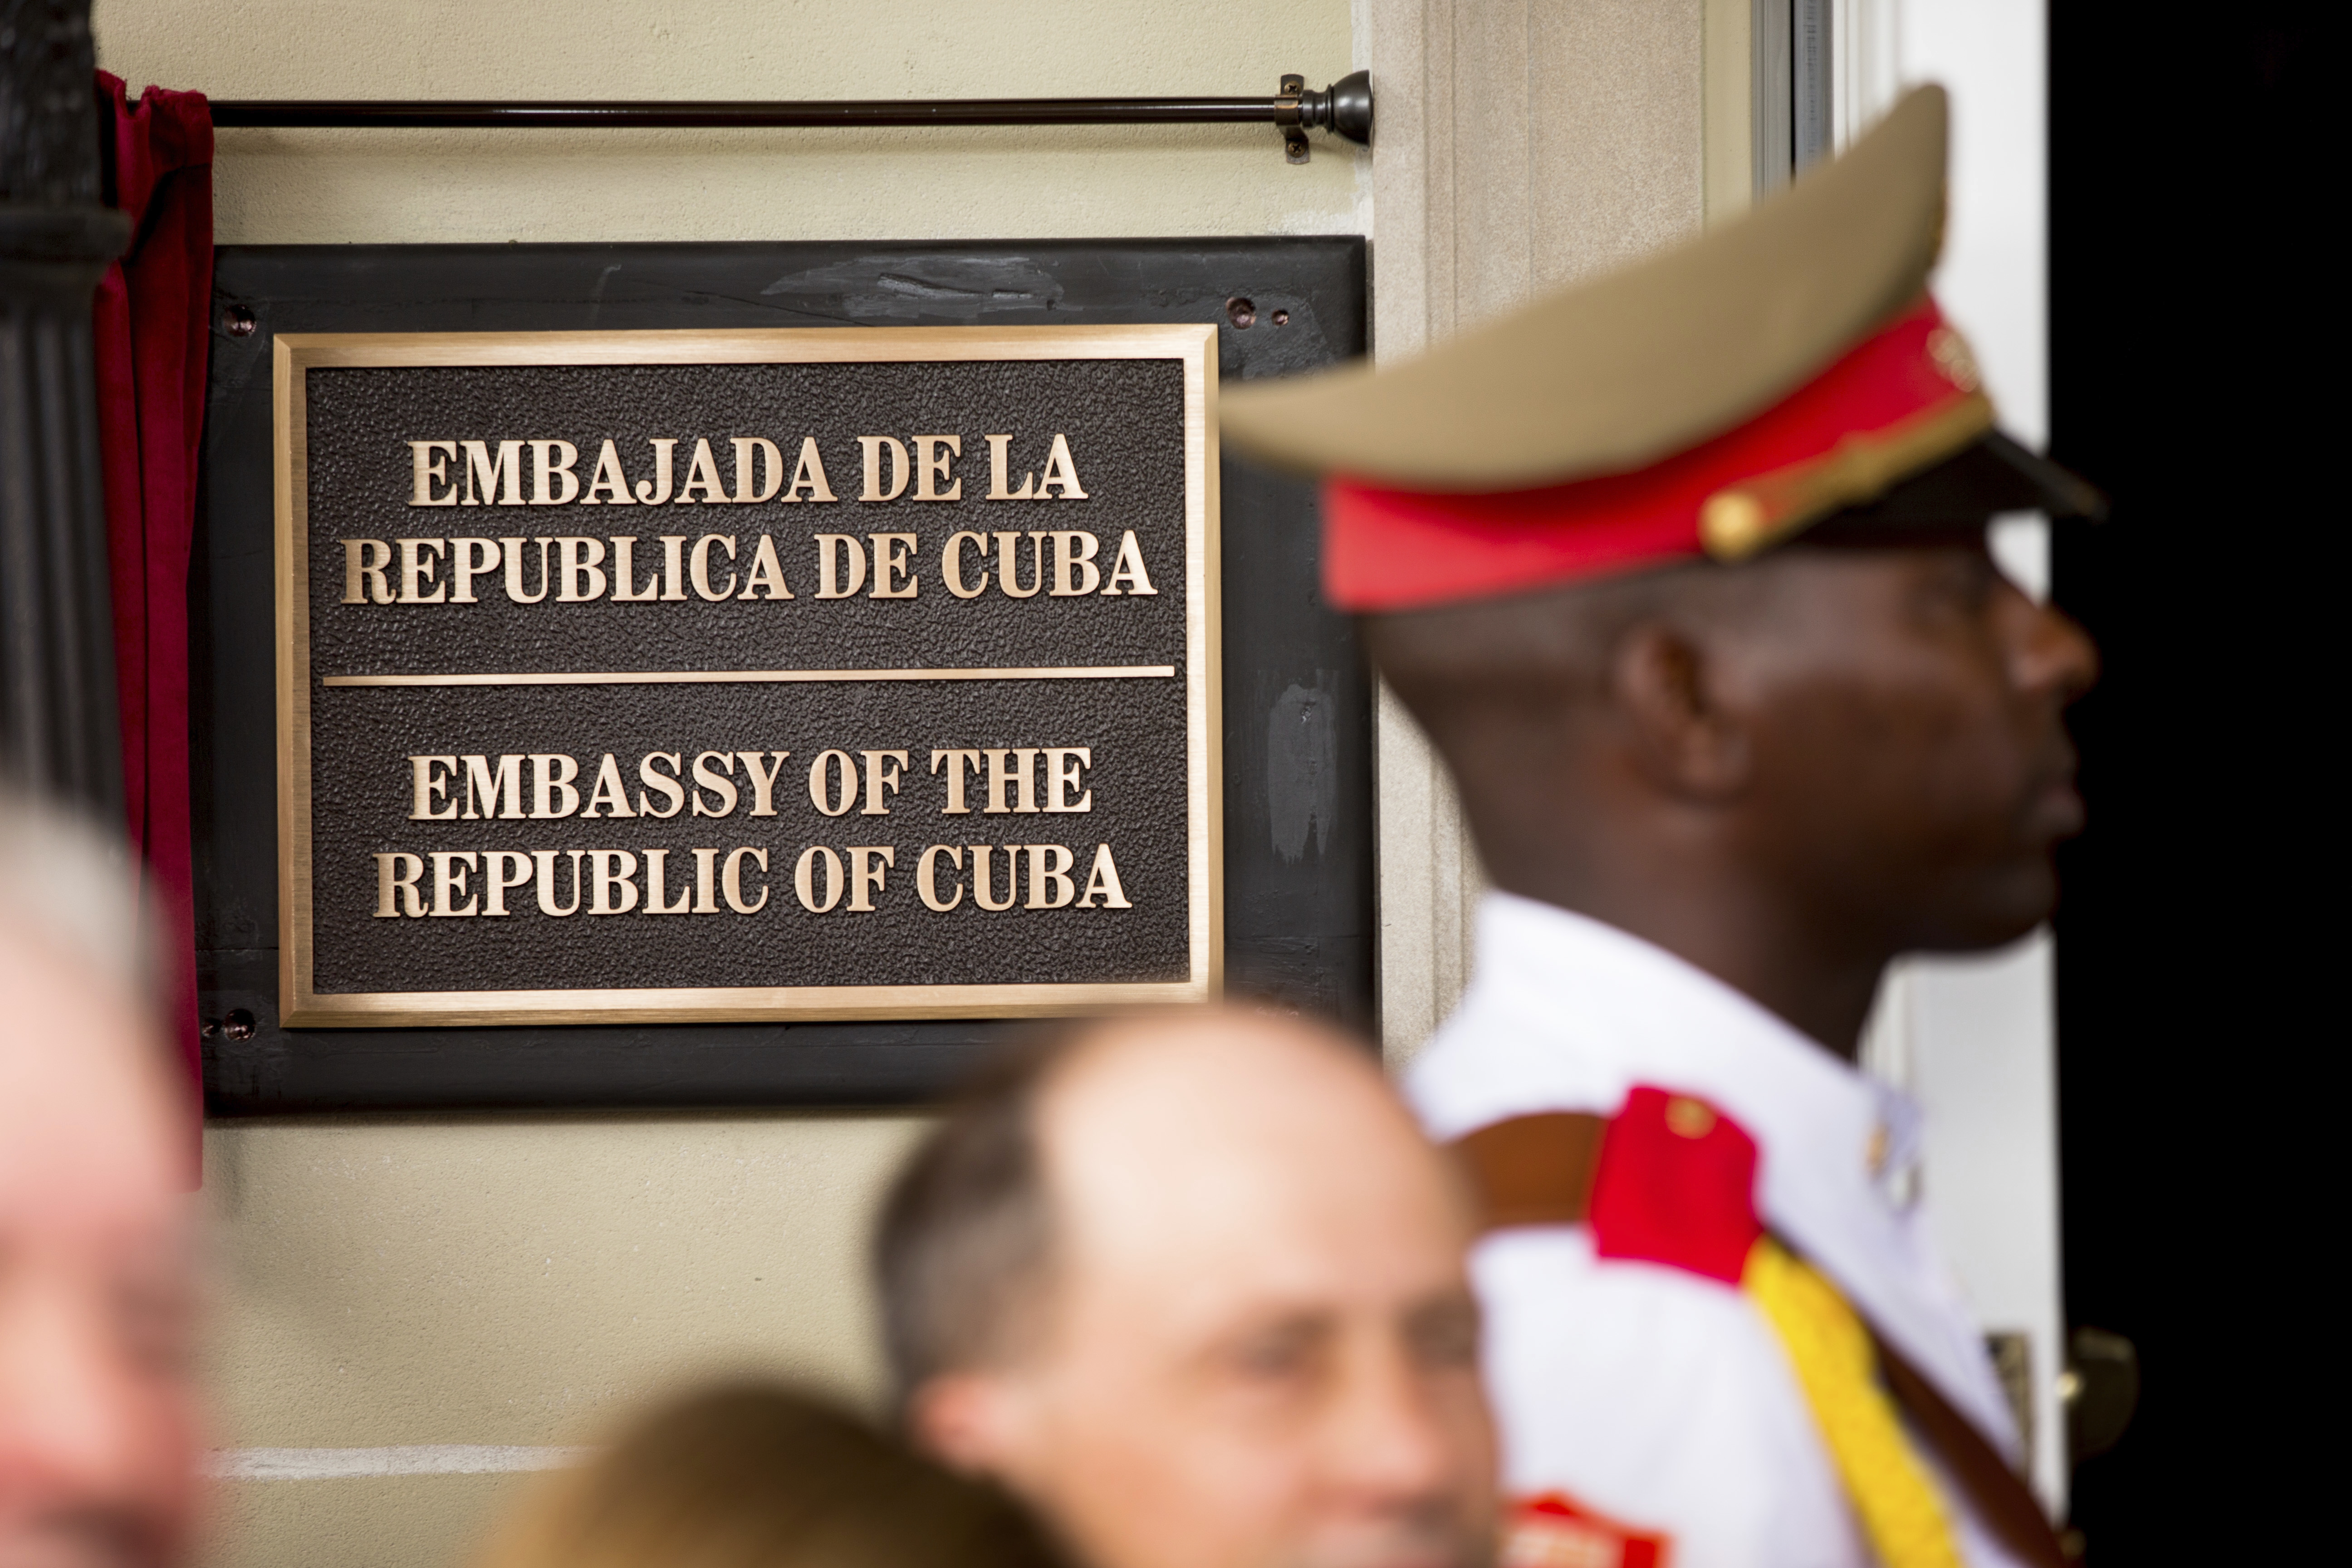 US, Canadian diplomats in Cuba blame 'sonic device' for hearing loss